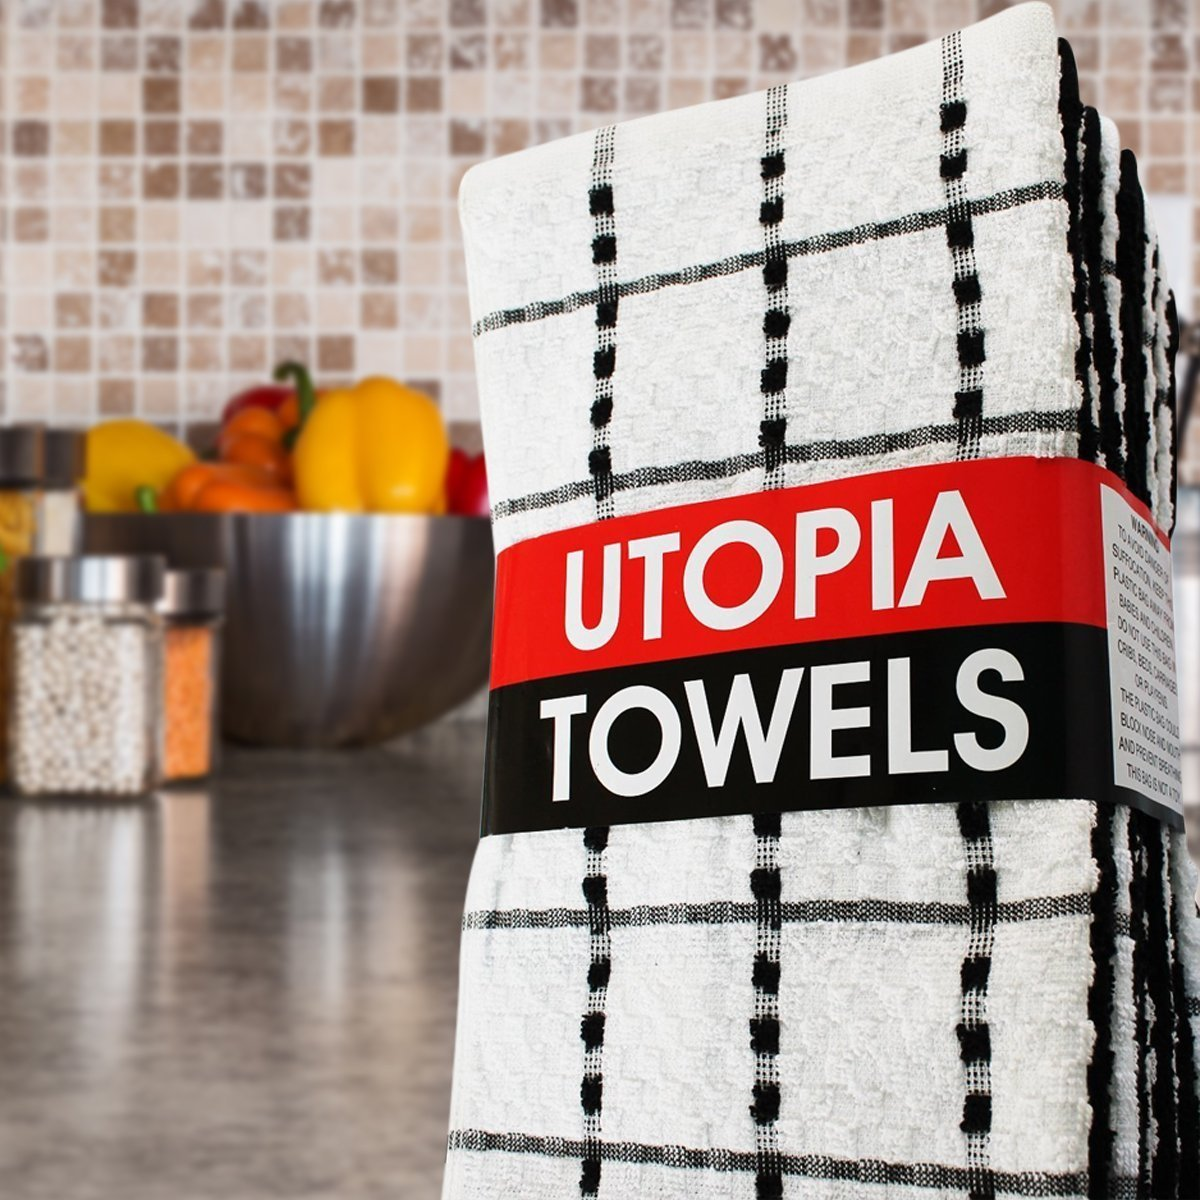 Utopia Towels 12 Pack Kitchen Towels 15 x 25 inch Cotton Dish Towels, Tea Towels and bar Towels by Utopia Towels (Image #6)